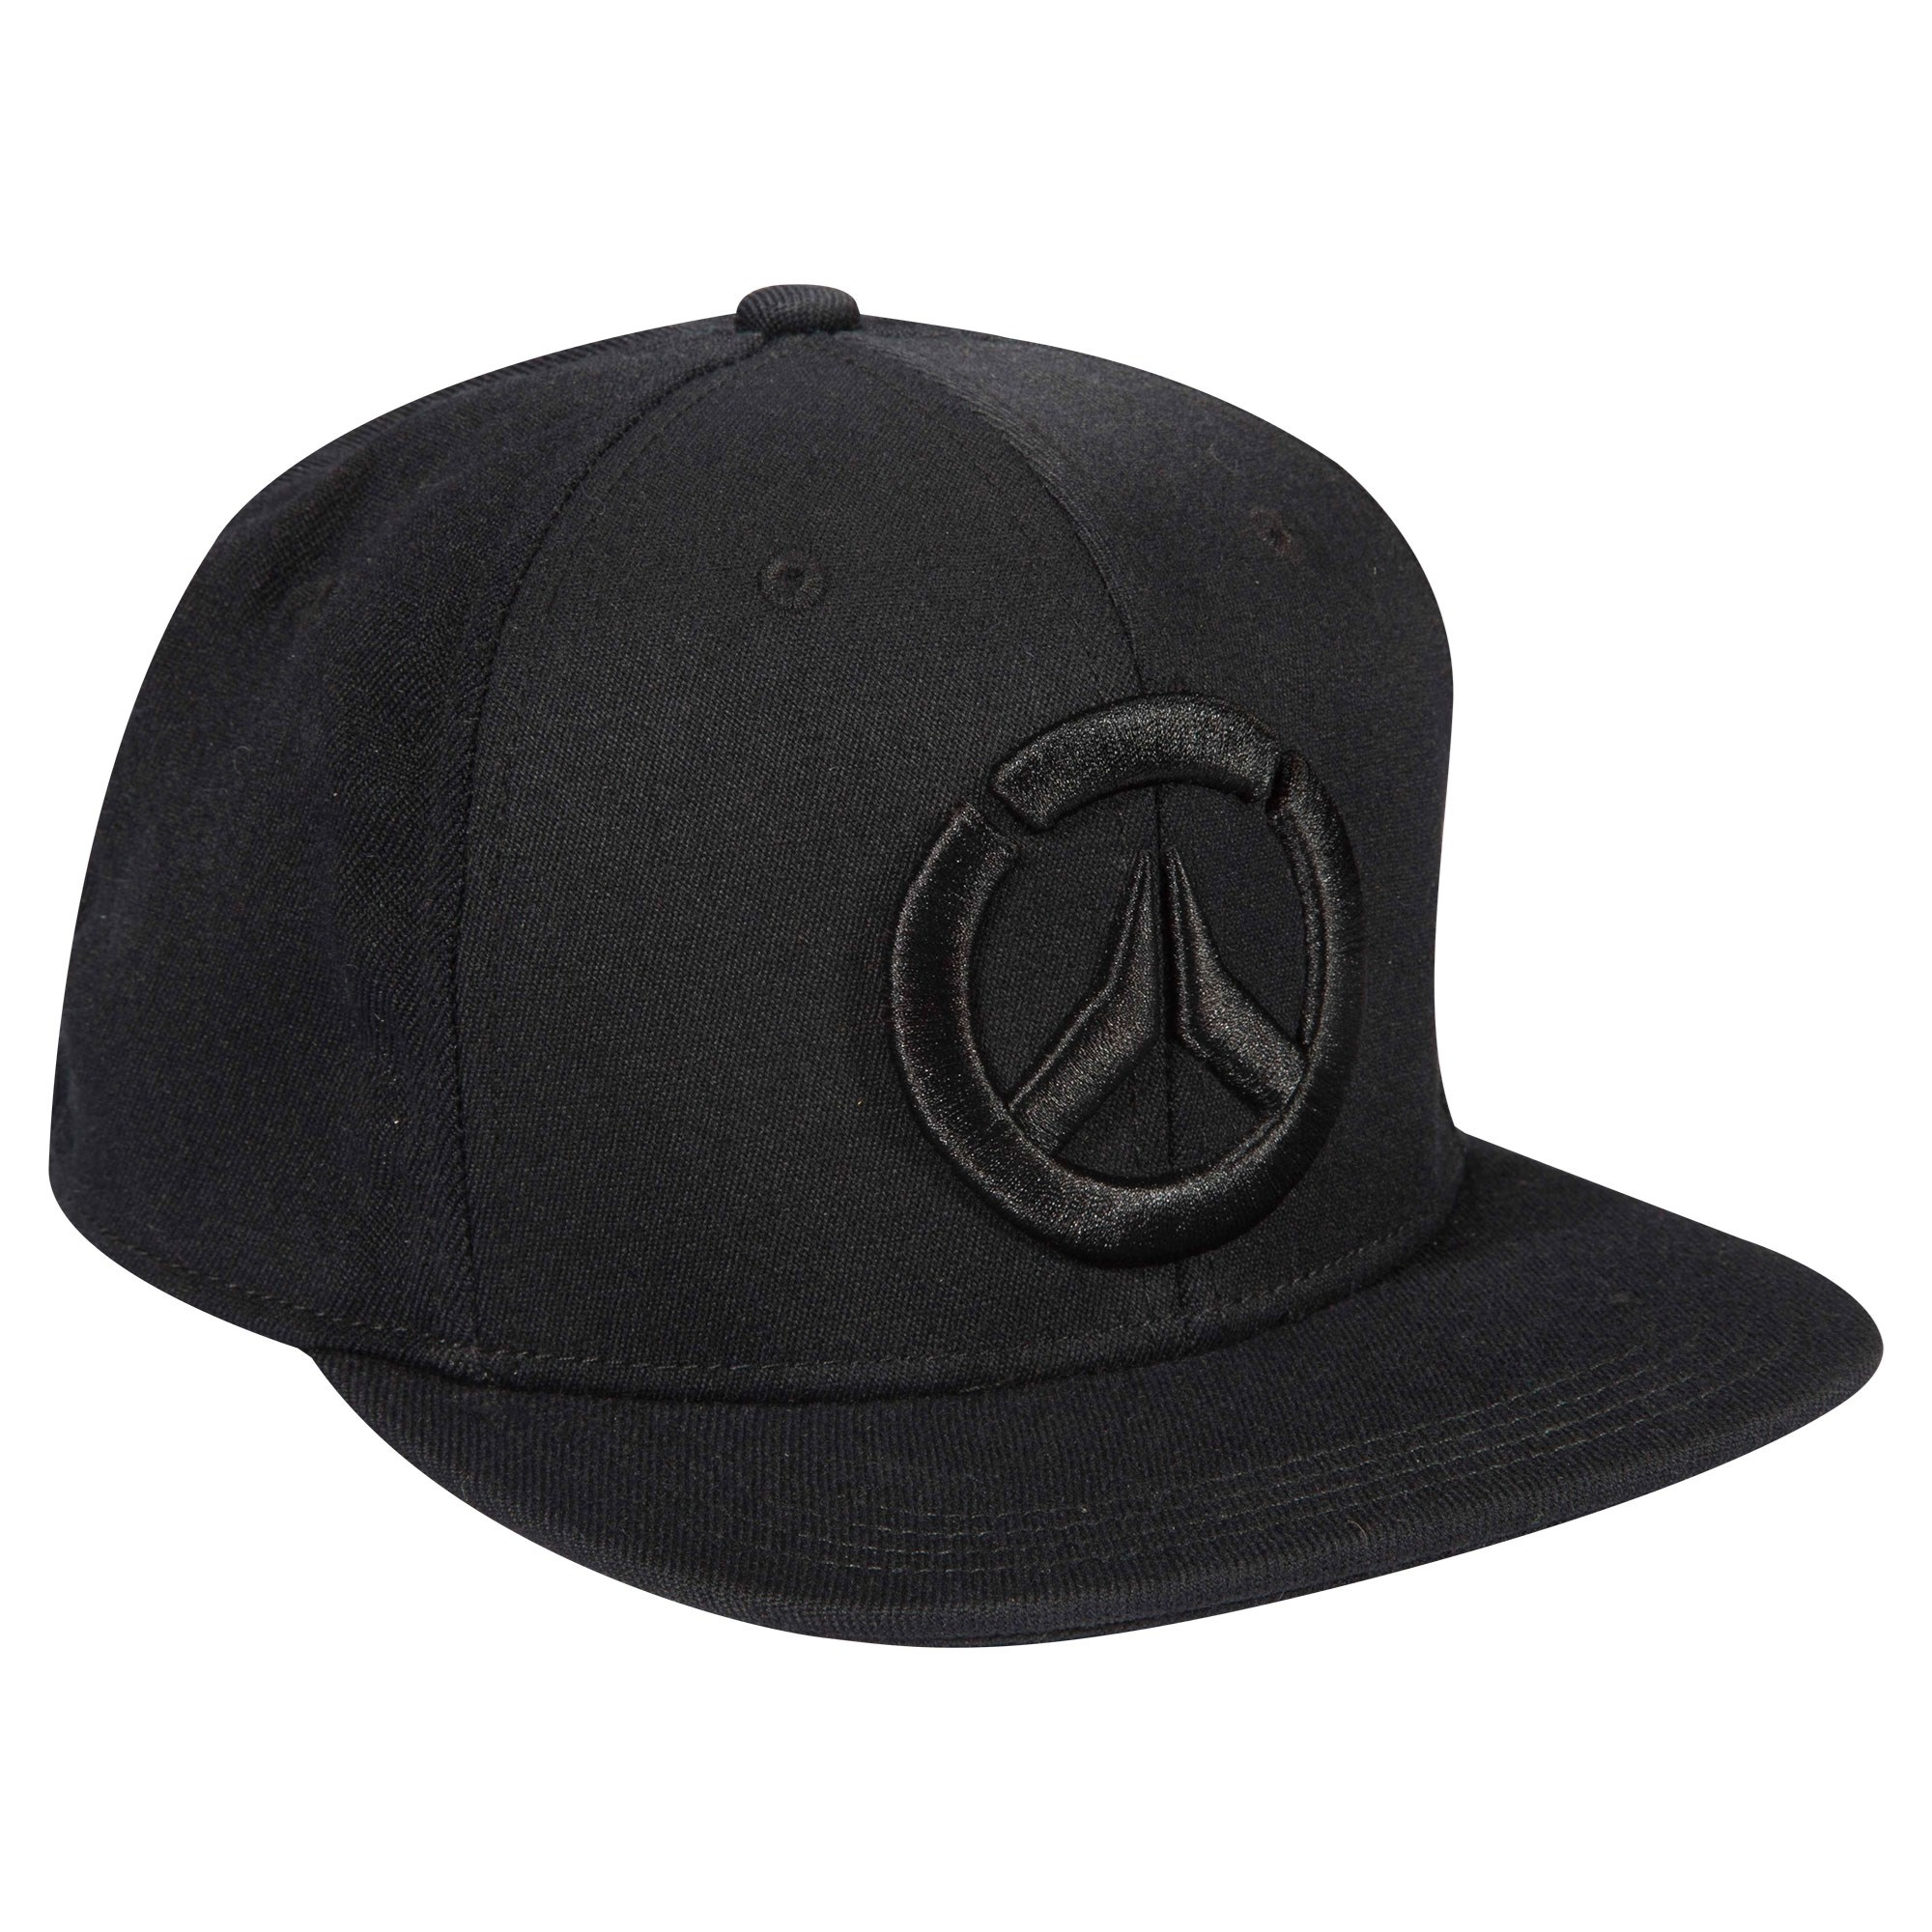 Alternative photo: Overwatch Blackout Stretch Fit Cap